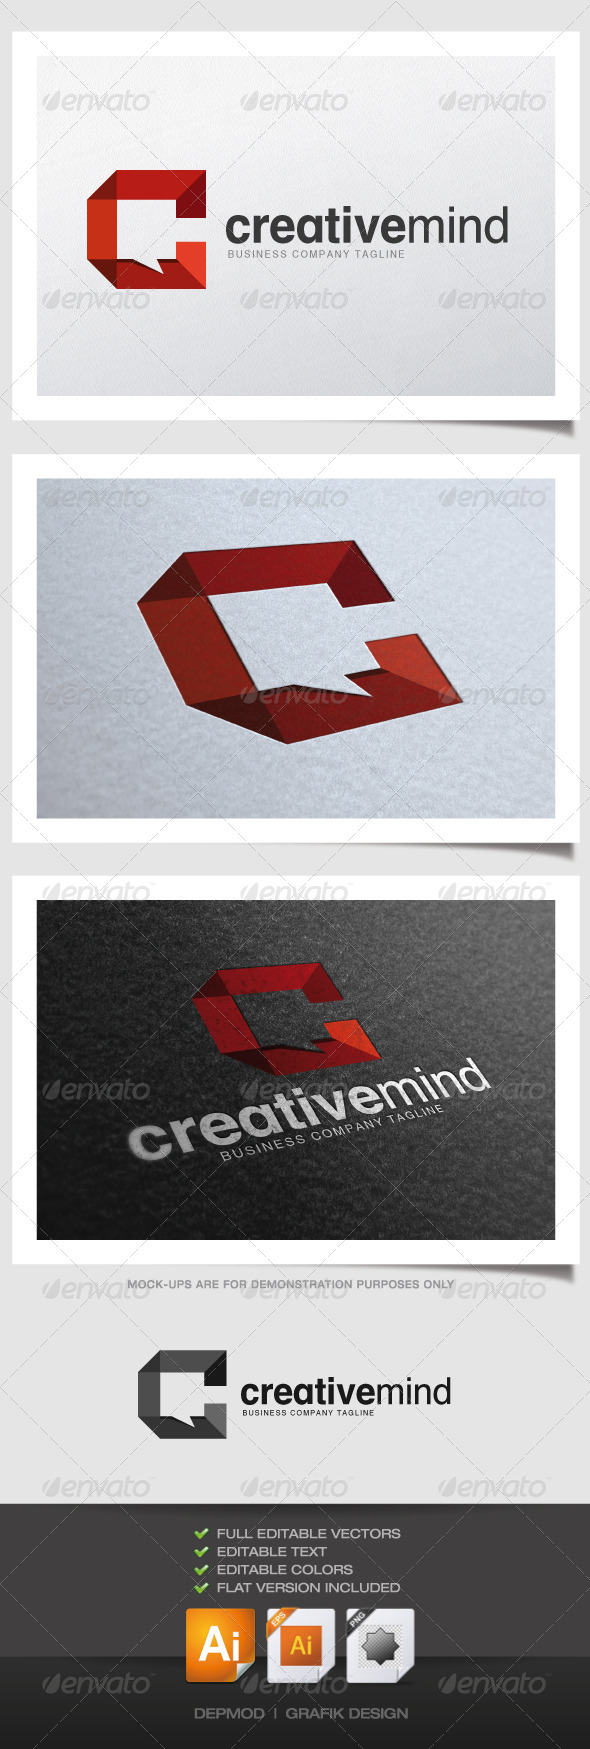 Creative Mind Logo - Abstract Logo Templates